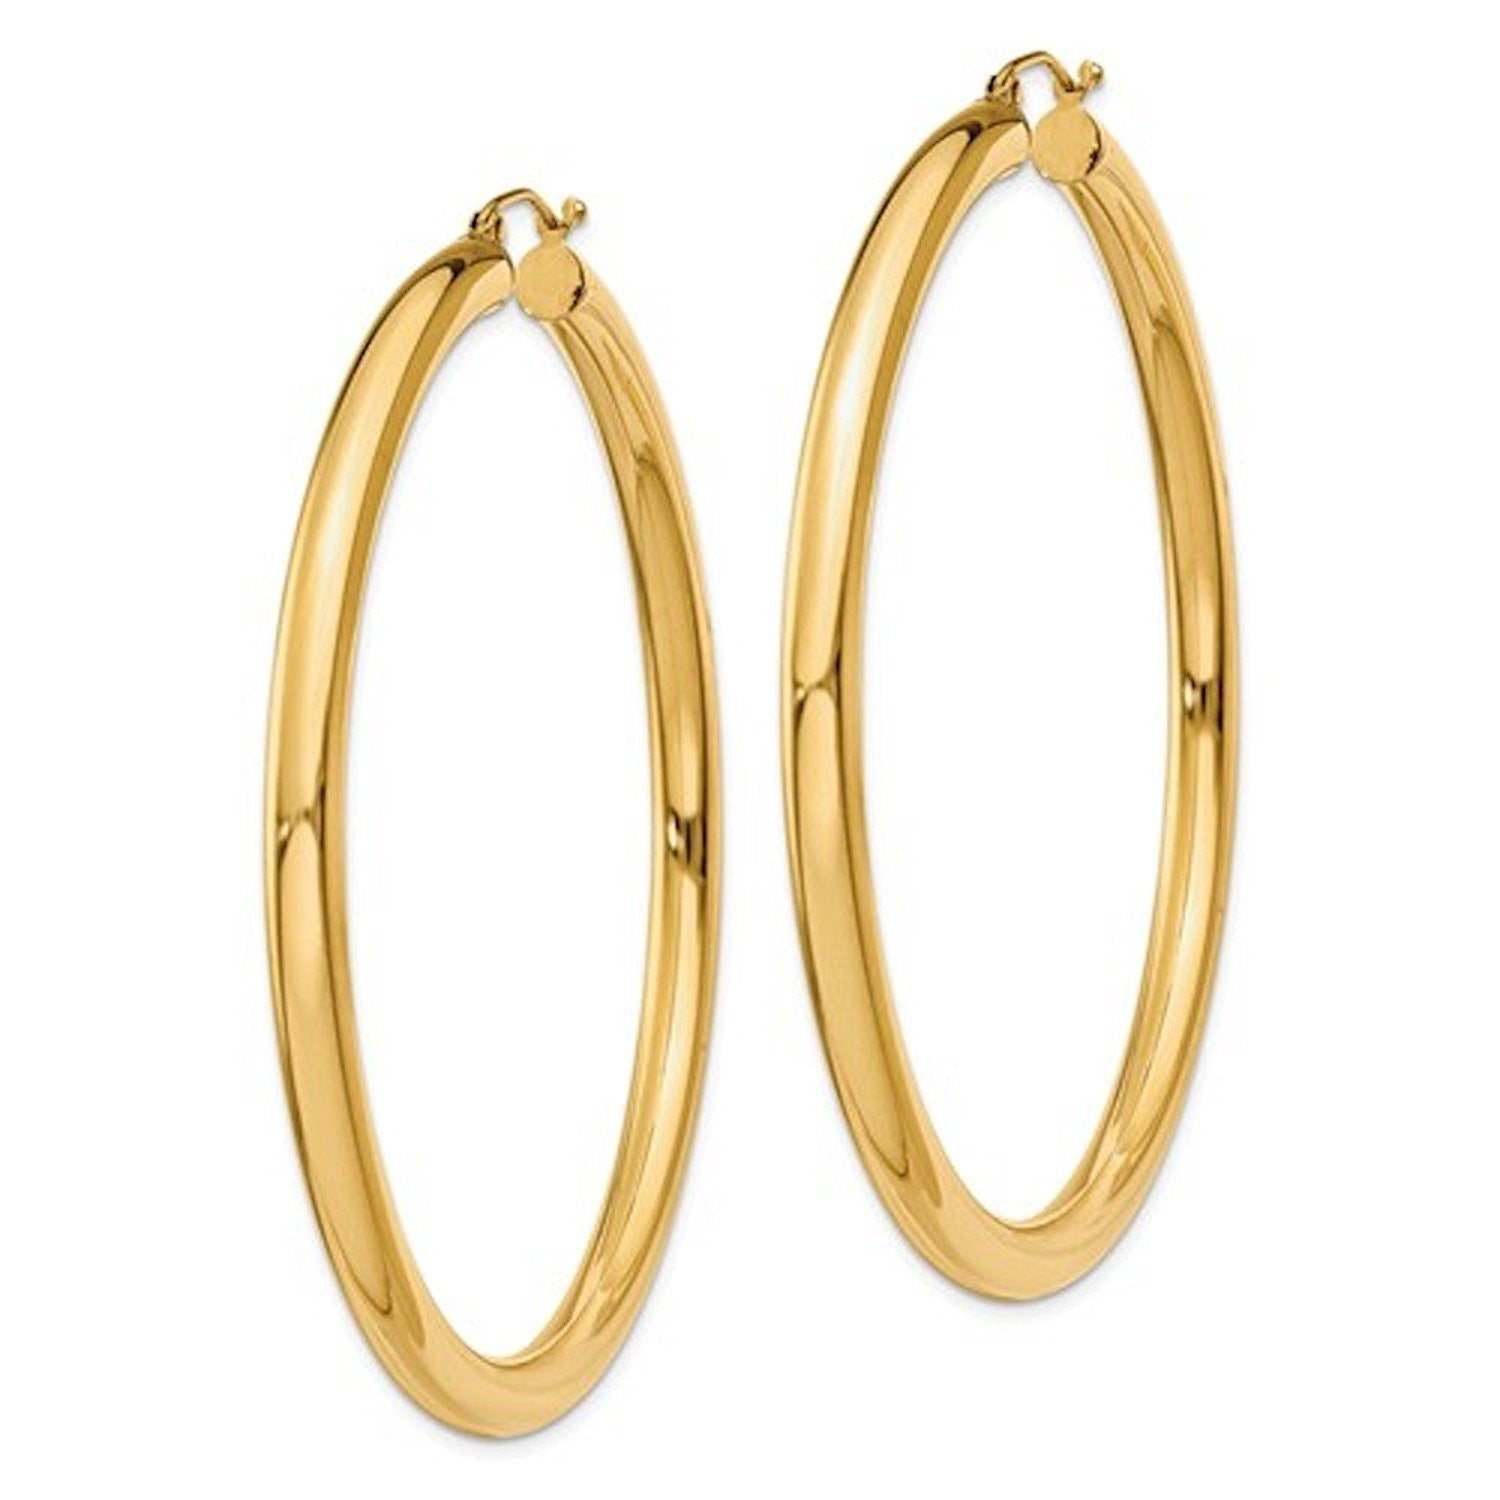 14K Yellow Gold Large Classic Round Hoop Earrings 60mmx4mm